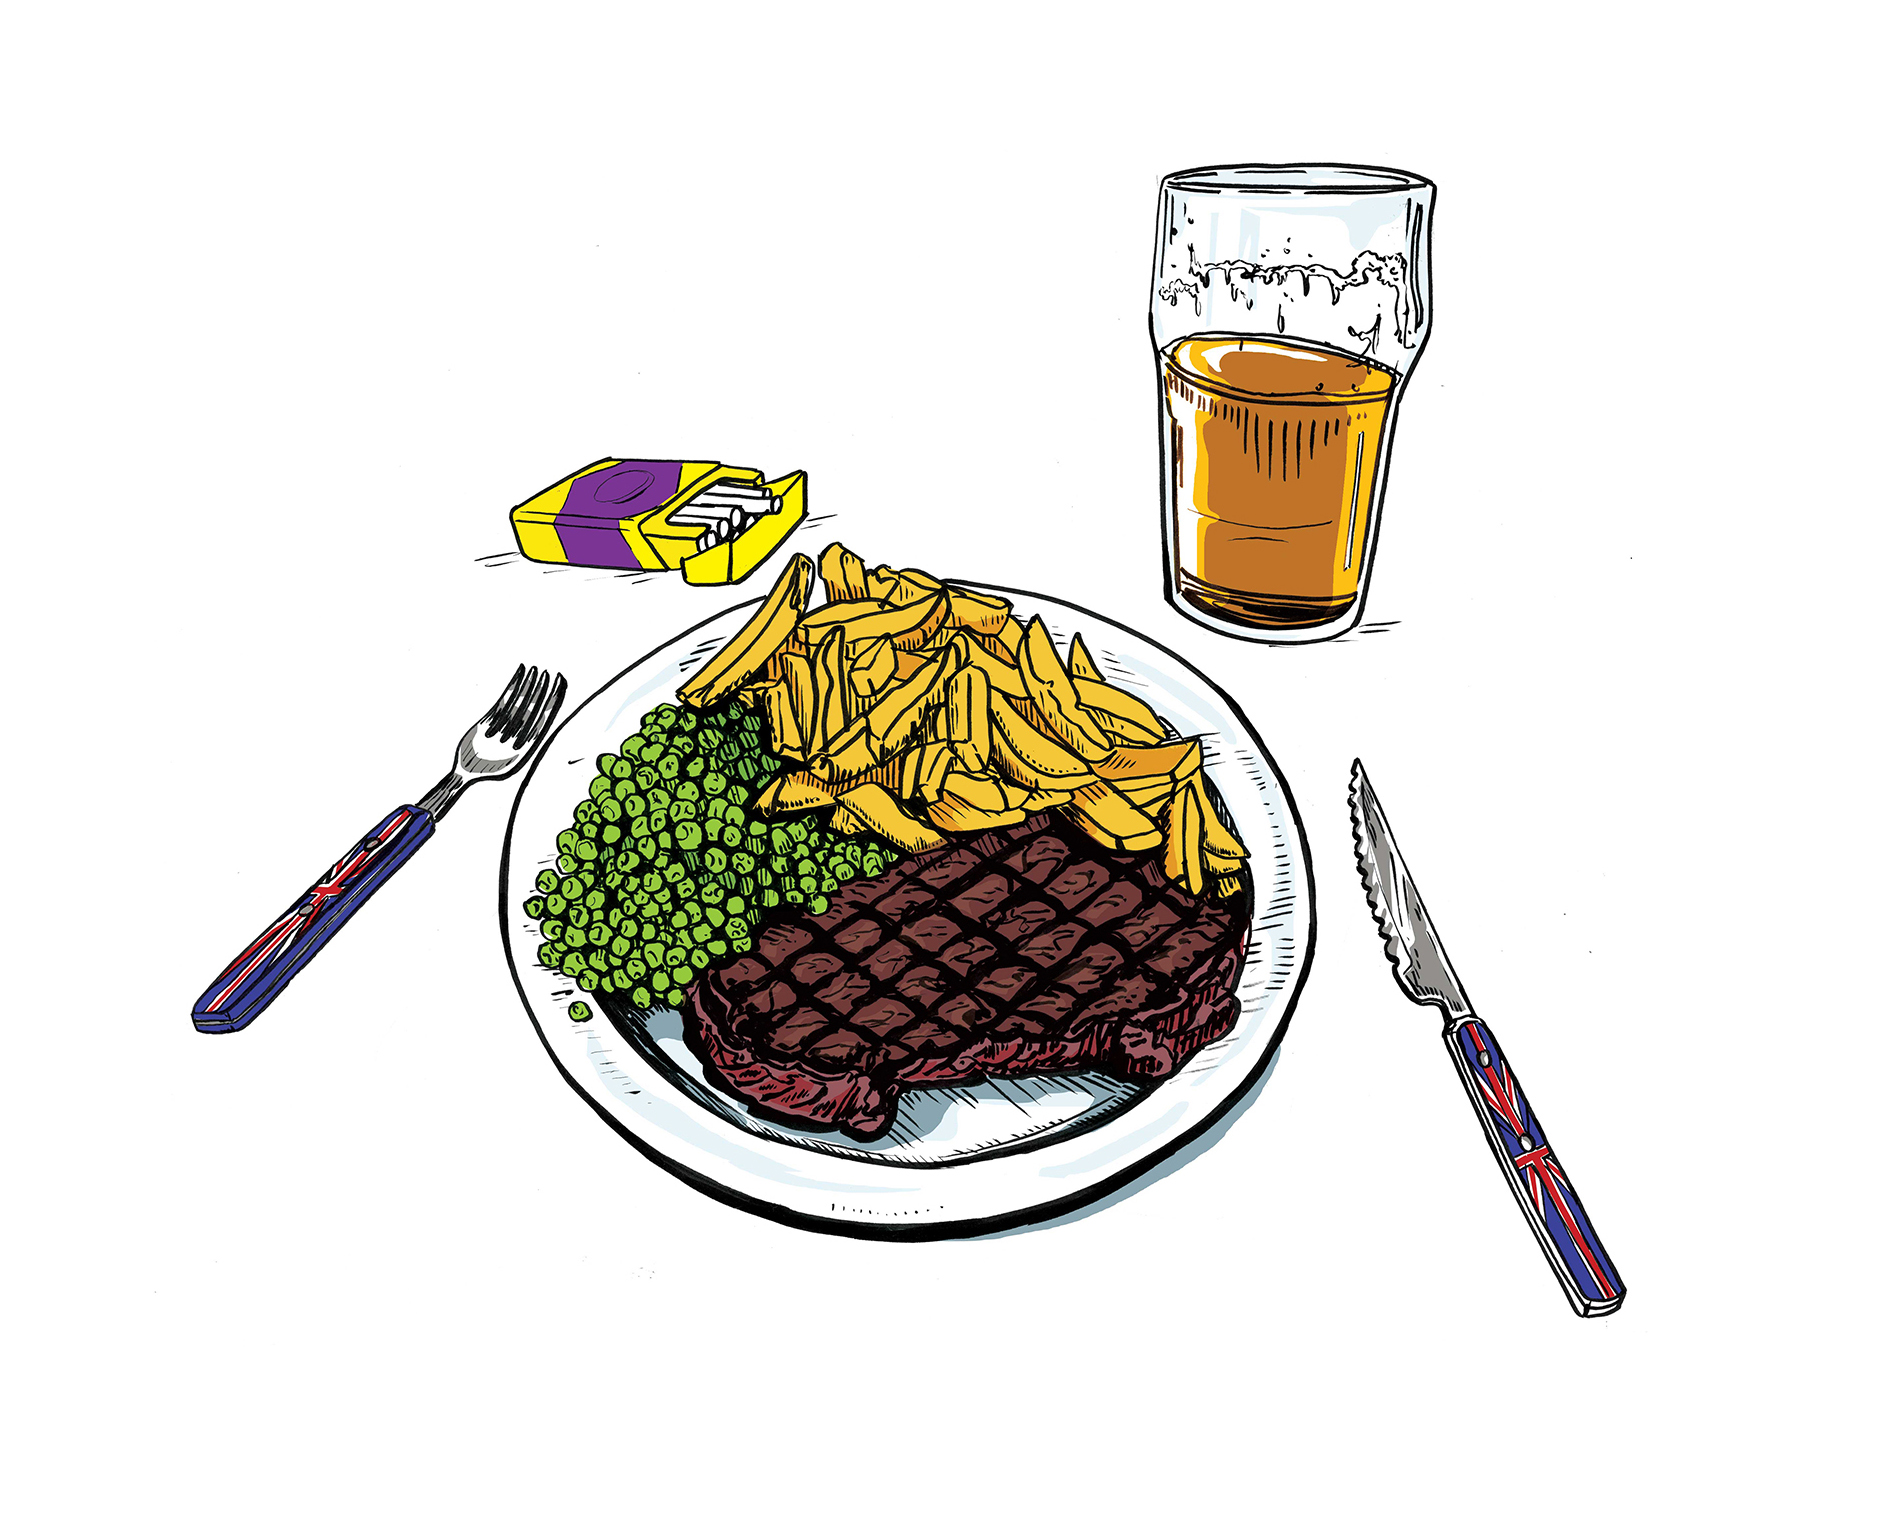 UKIP Dinner for Votes Vs Food Article at Delicious Magazine